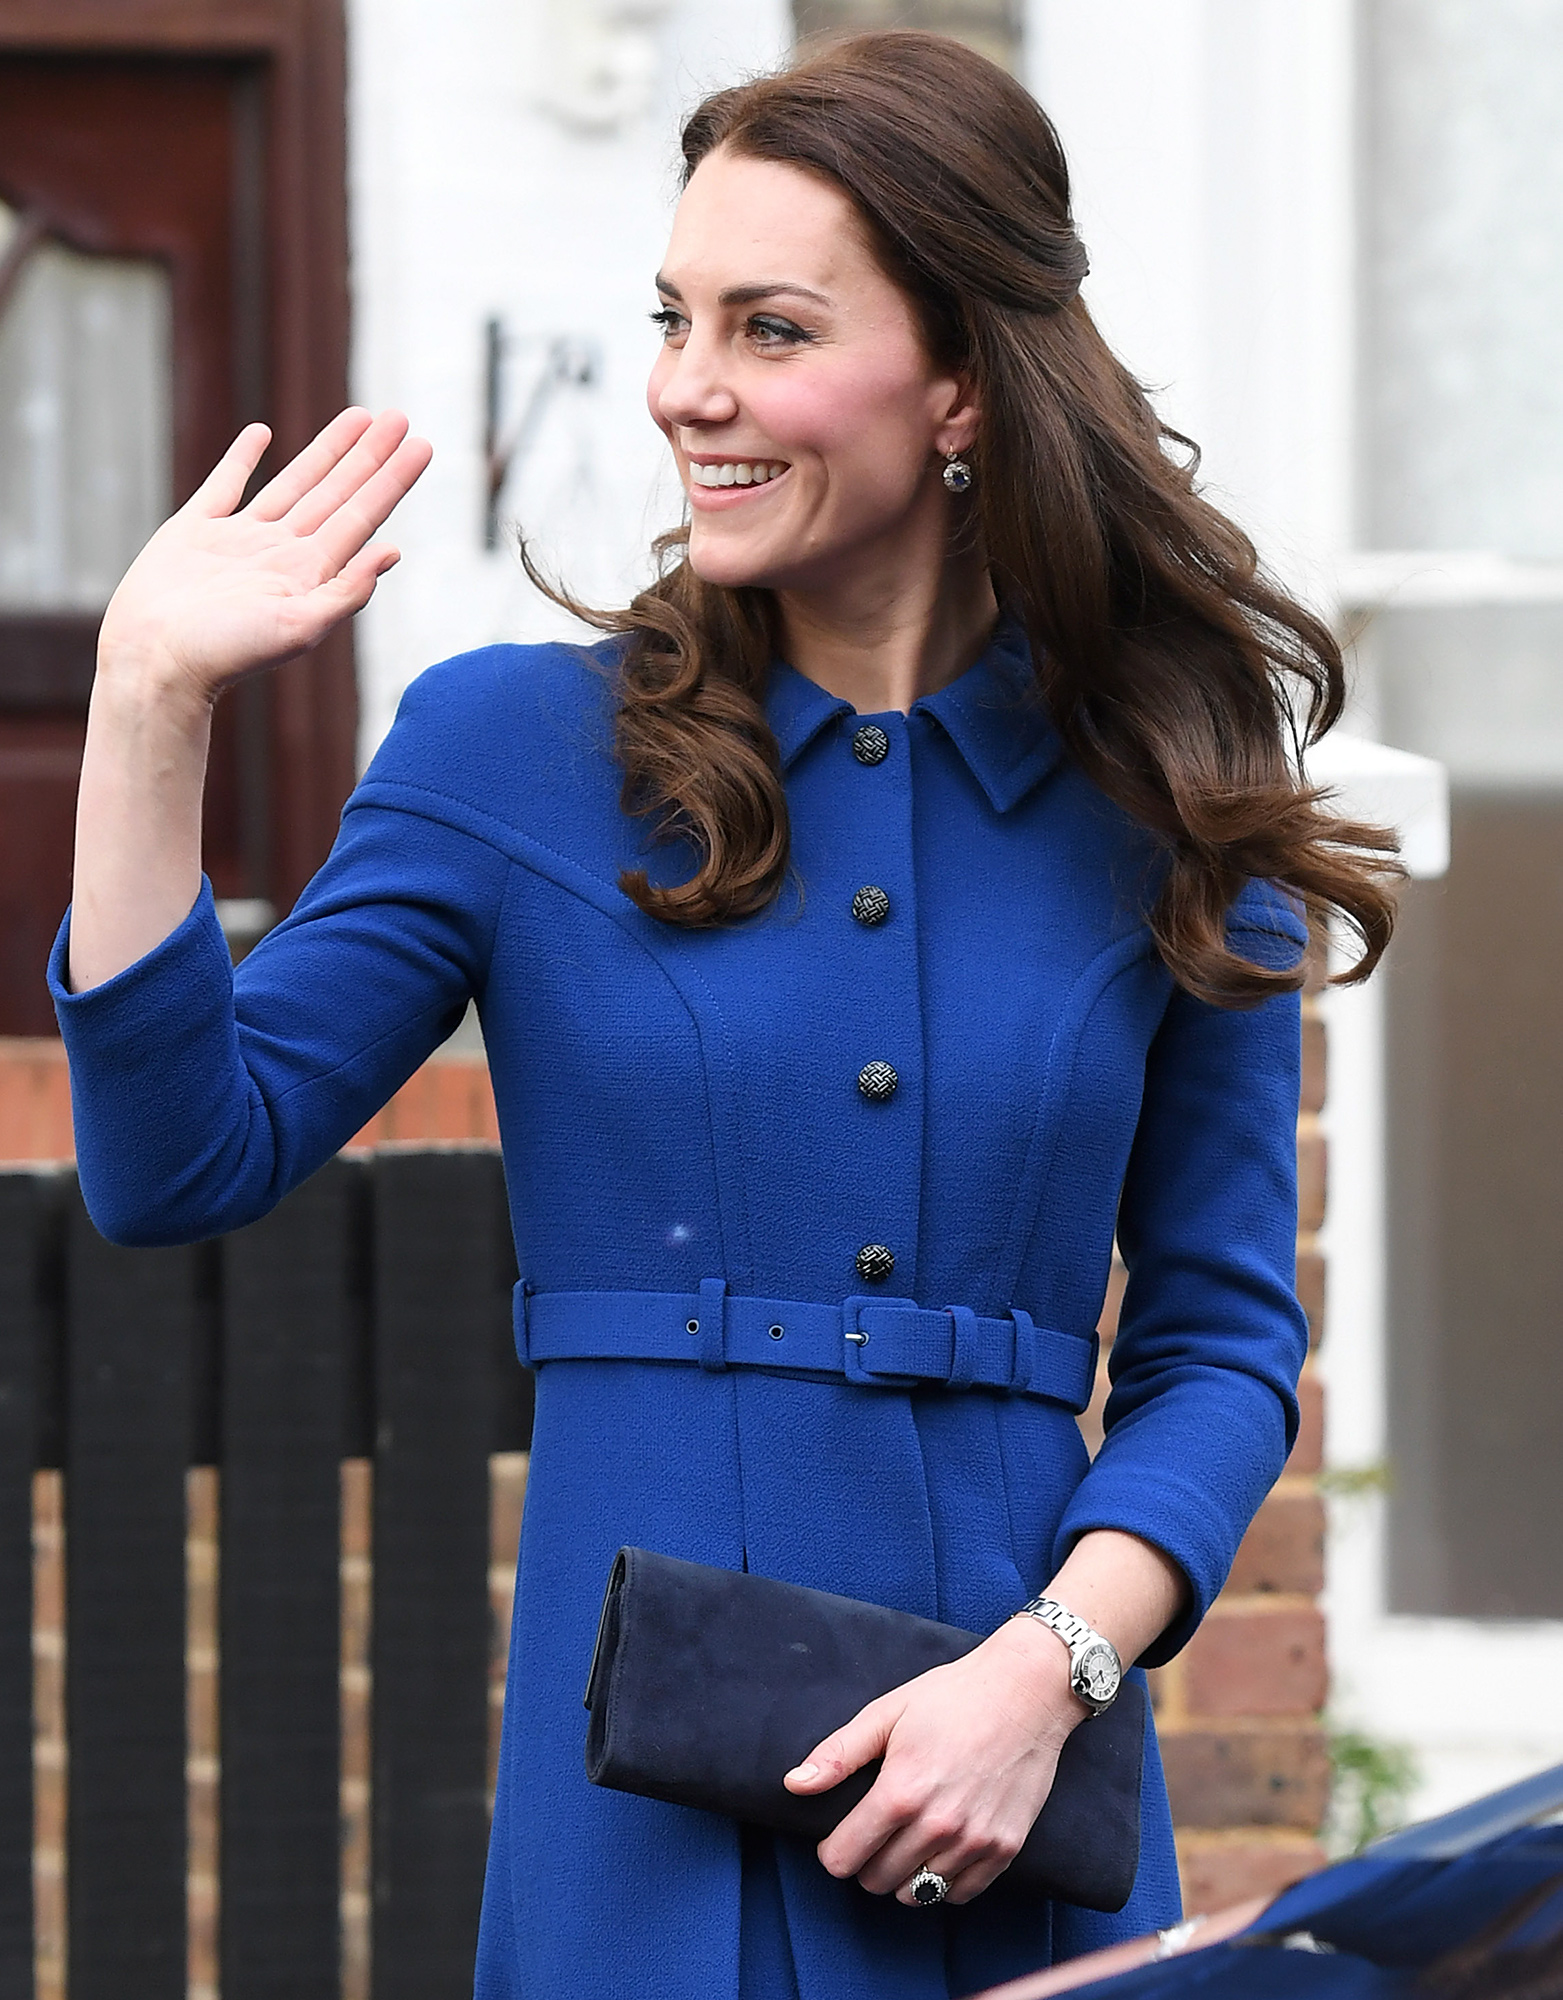 LONDON, ENGLAND - JANUARY 11: Catherine, Duchess Of Cambridge visits The Anna Freud Centre on January 11, 2017 in London, England. (Photo by Karwai Tang/WireImage)